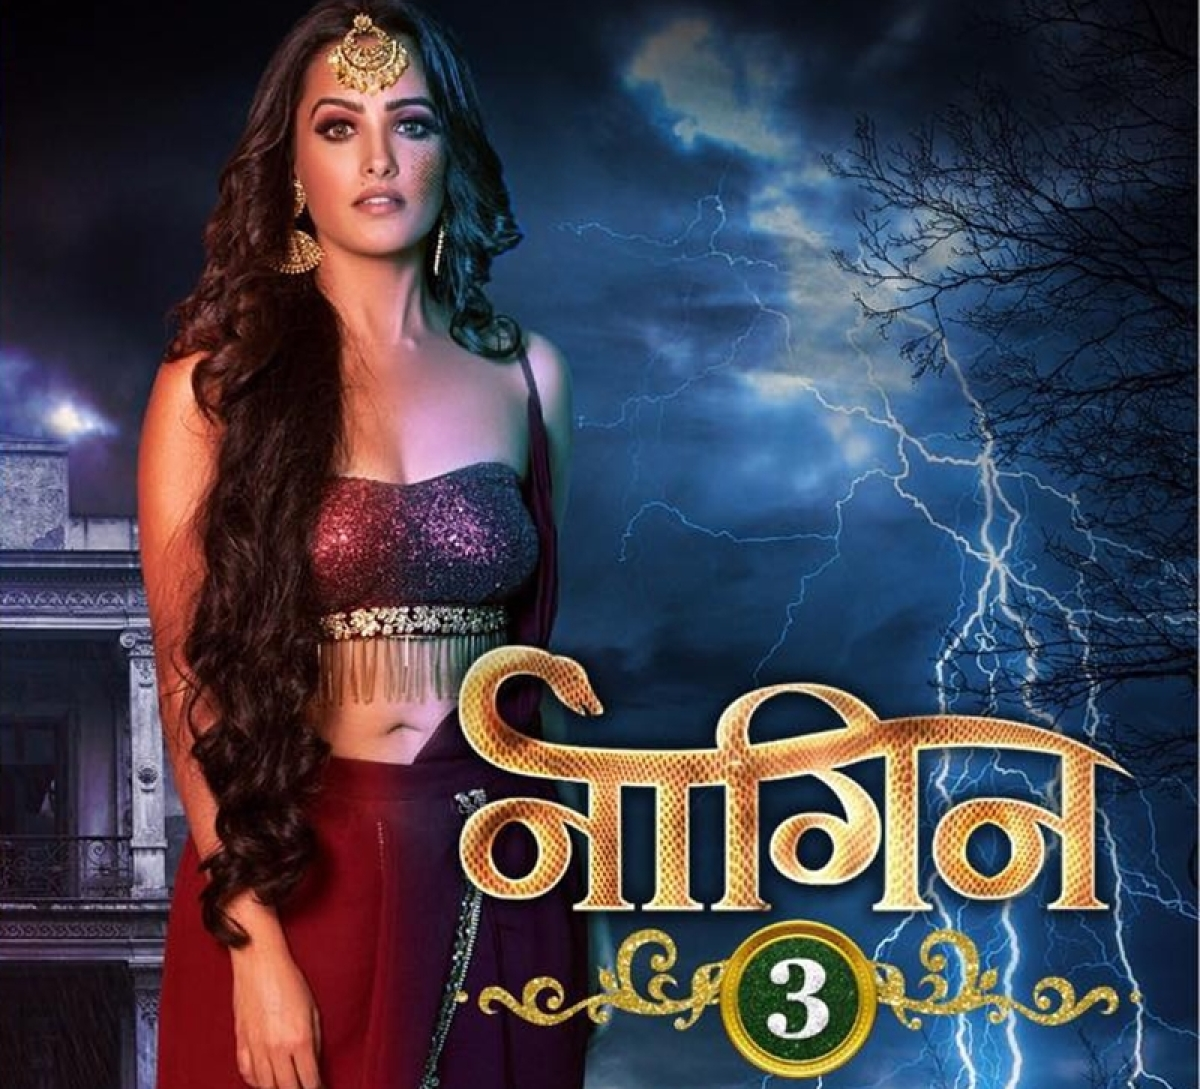 Naagin 3: Meet Anita Hassanandani, a shape-shifting snake woman with a vendetta